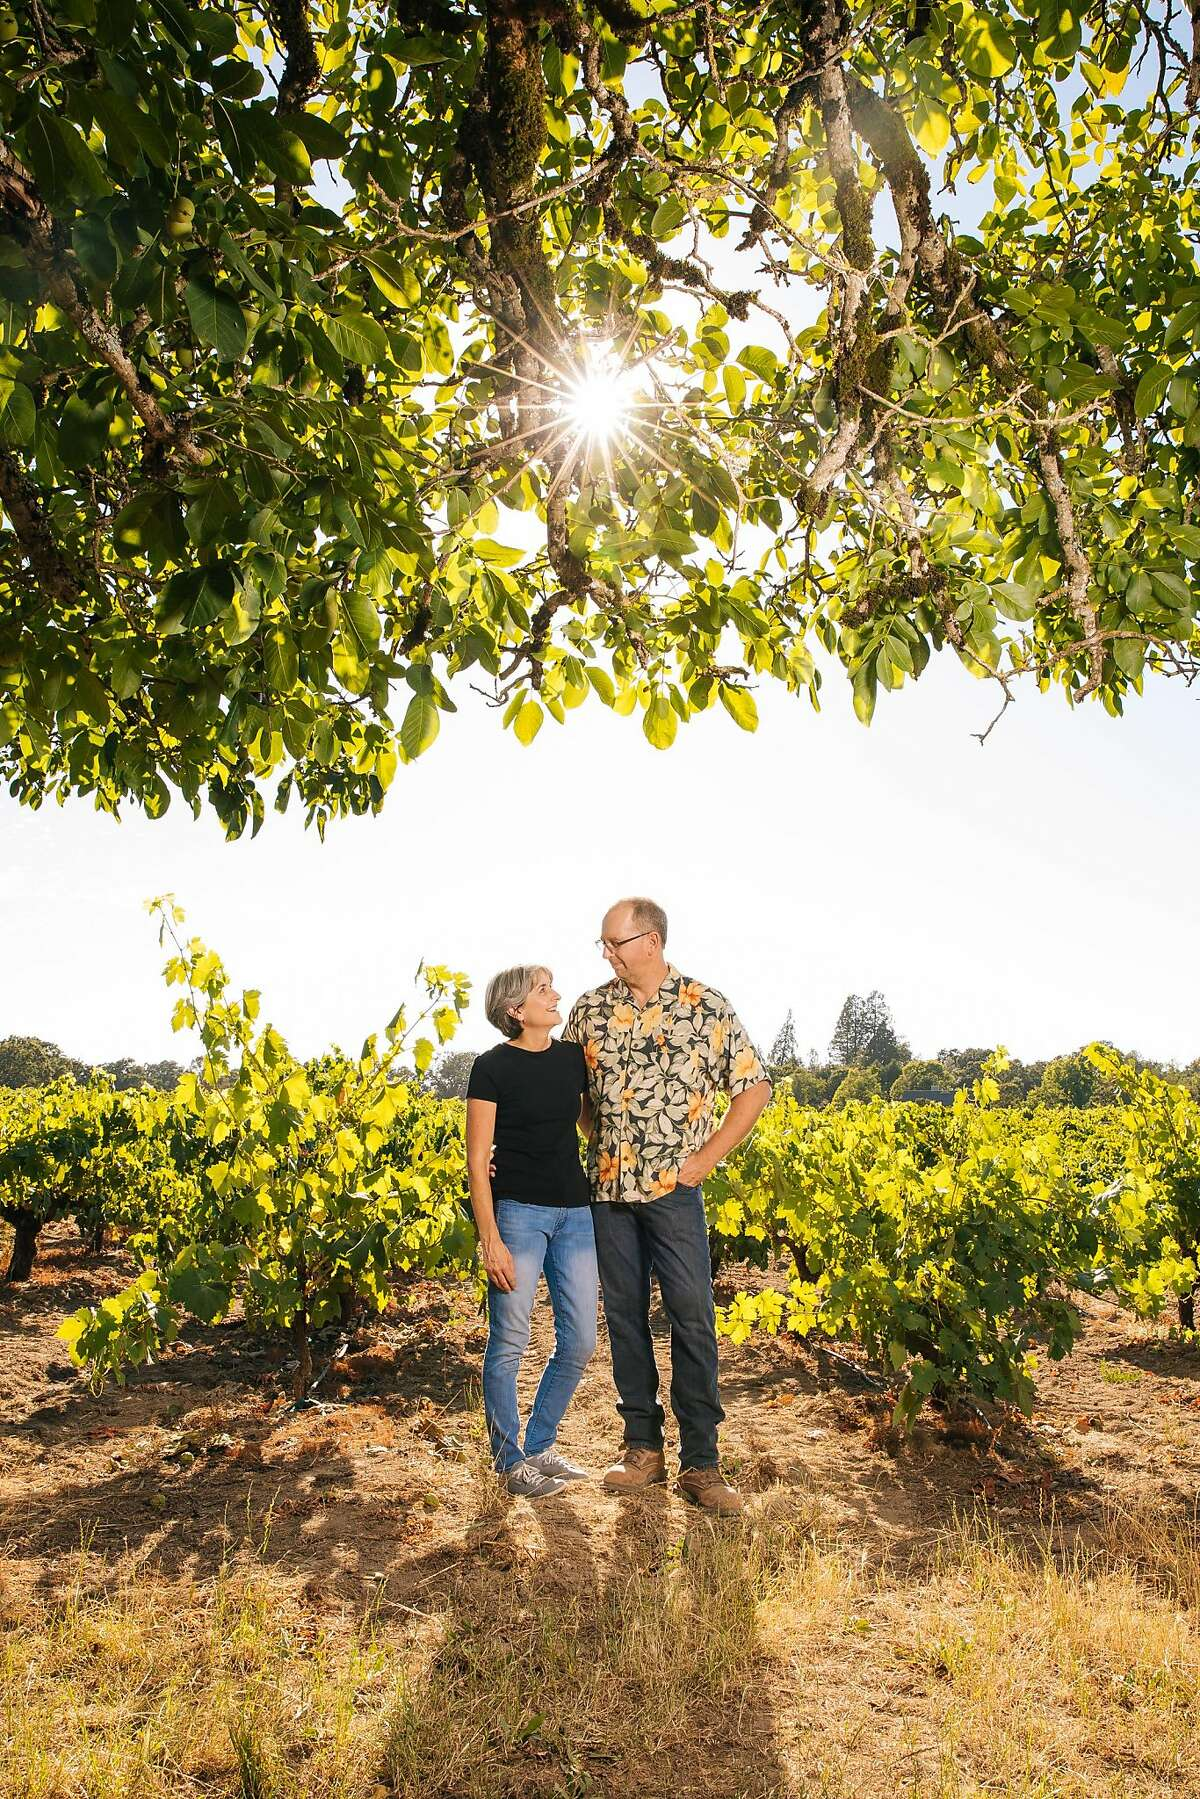 Mike Officer and Kendall Officer, owners of the Carlisle Winery and Vineyard, photographed in the Carlisle Vineyard in Windsor, Calif. Saturday, July 22, 2017.